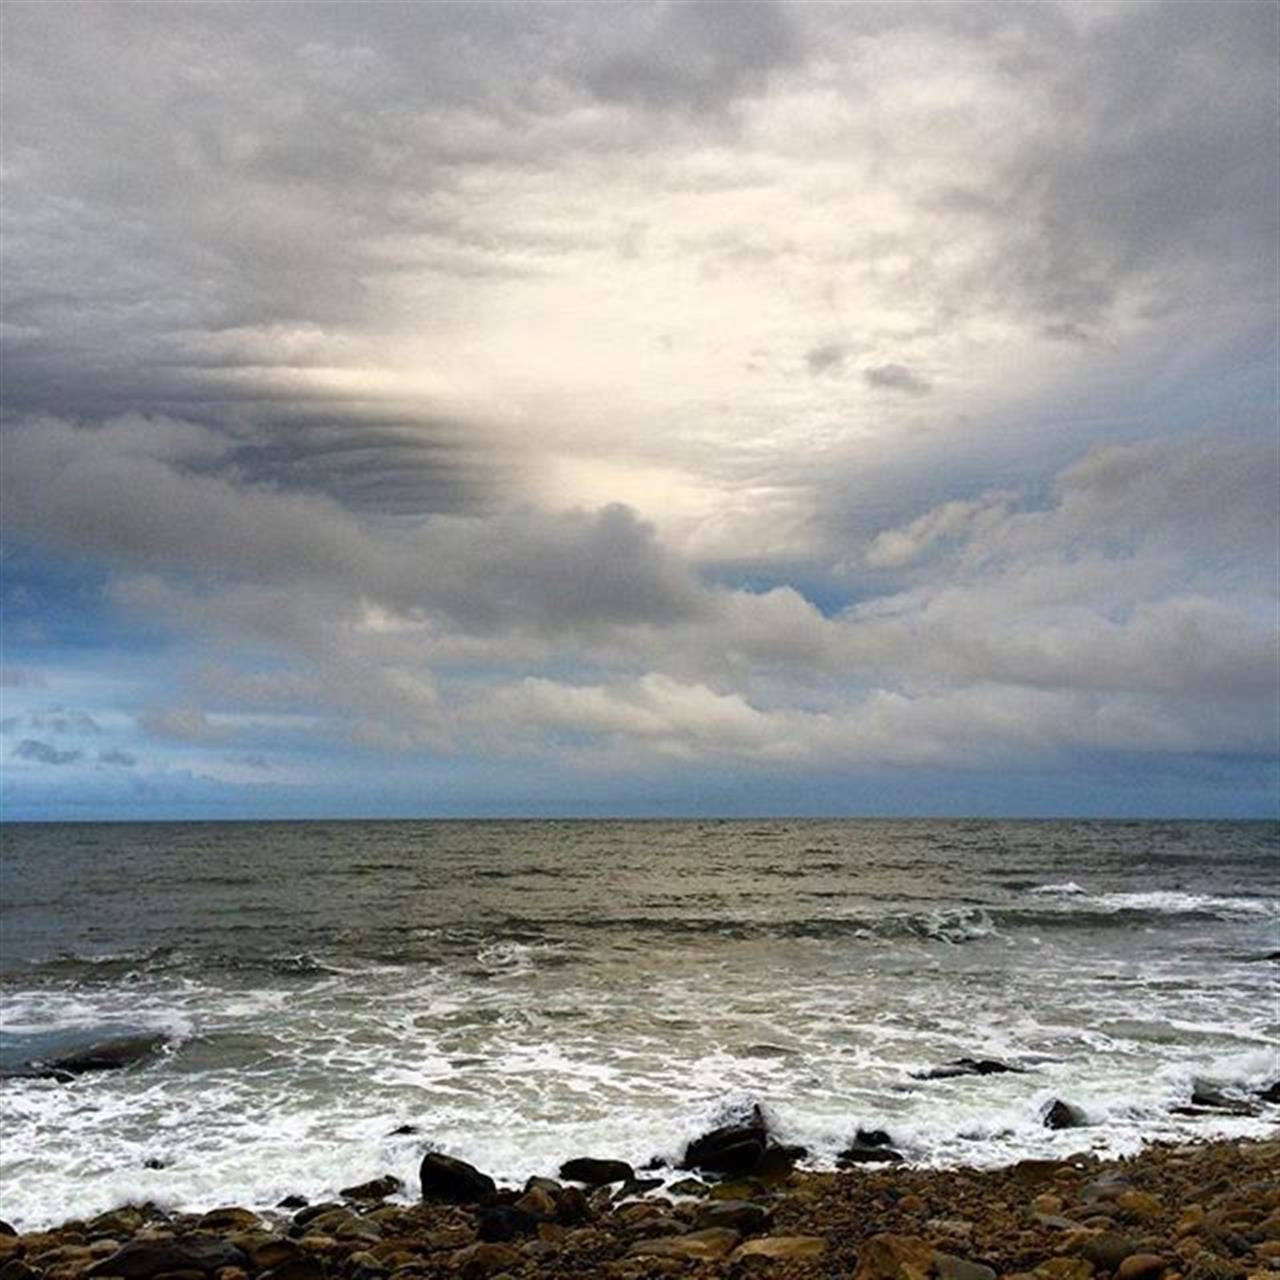 Moody weather I can relate #grattitude #hope #stormy#leadingRE #beauty #weather #seas #ocean #outdoors #nature #adventure #possiblities #magic #imagine #wisdom #lovelife #perfect #bewell